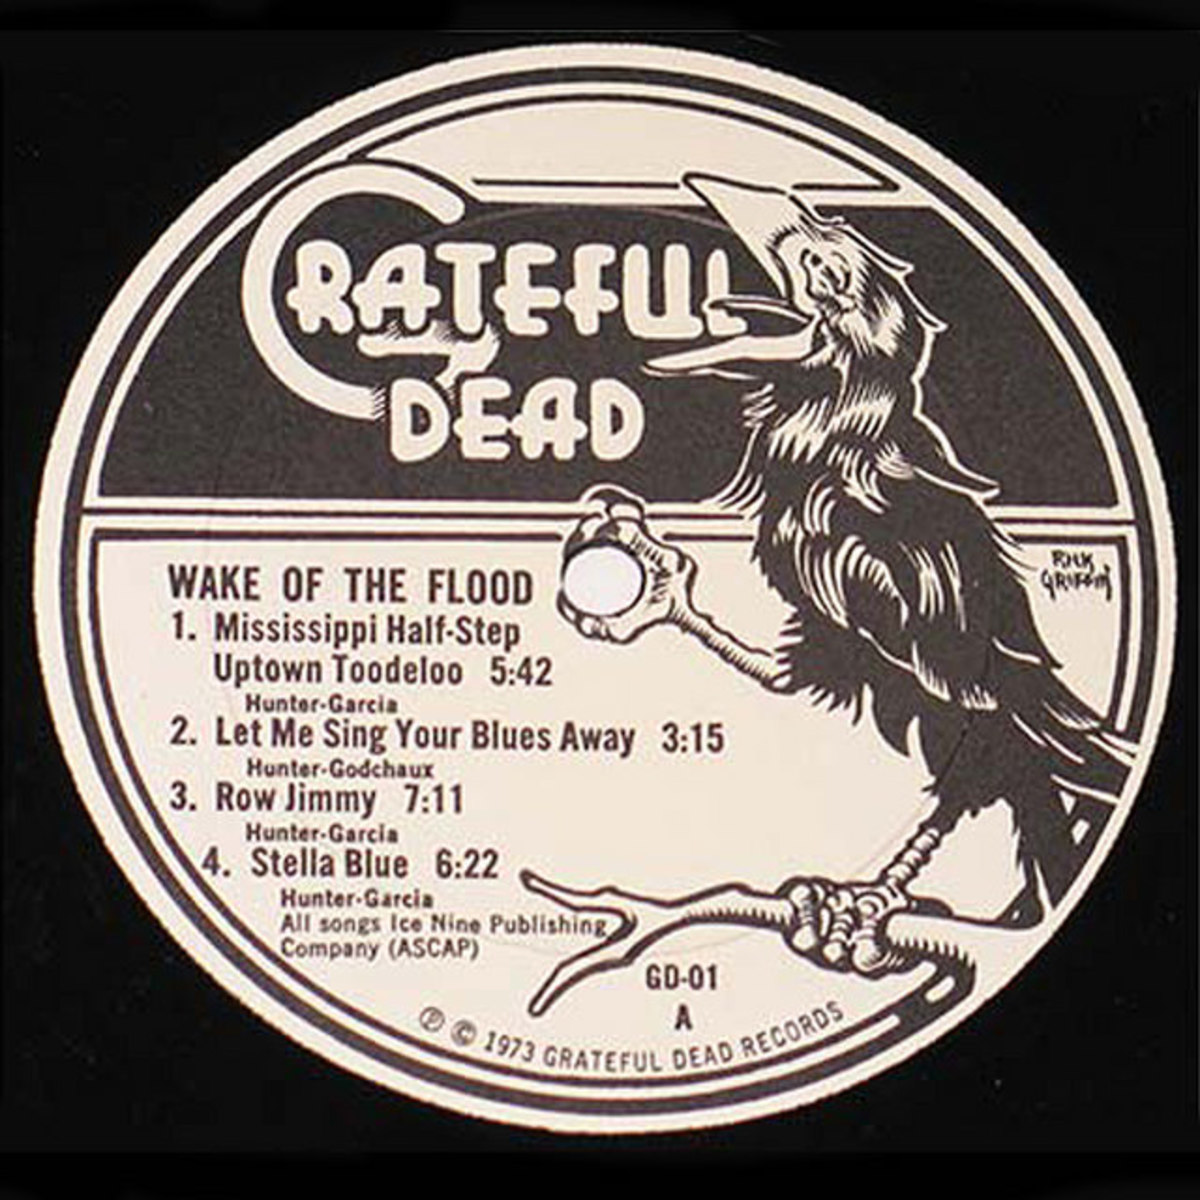 "Grateful Dead ""Wake Of the Flood"" Grateful Dead Records GD-01 12"" LP Vinyl Record (1973) Label Art by Rick Griffin"